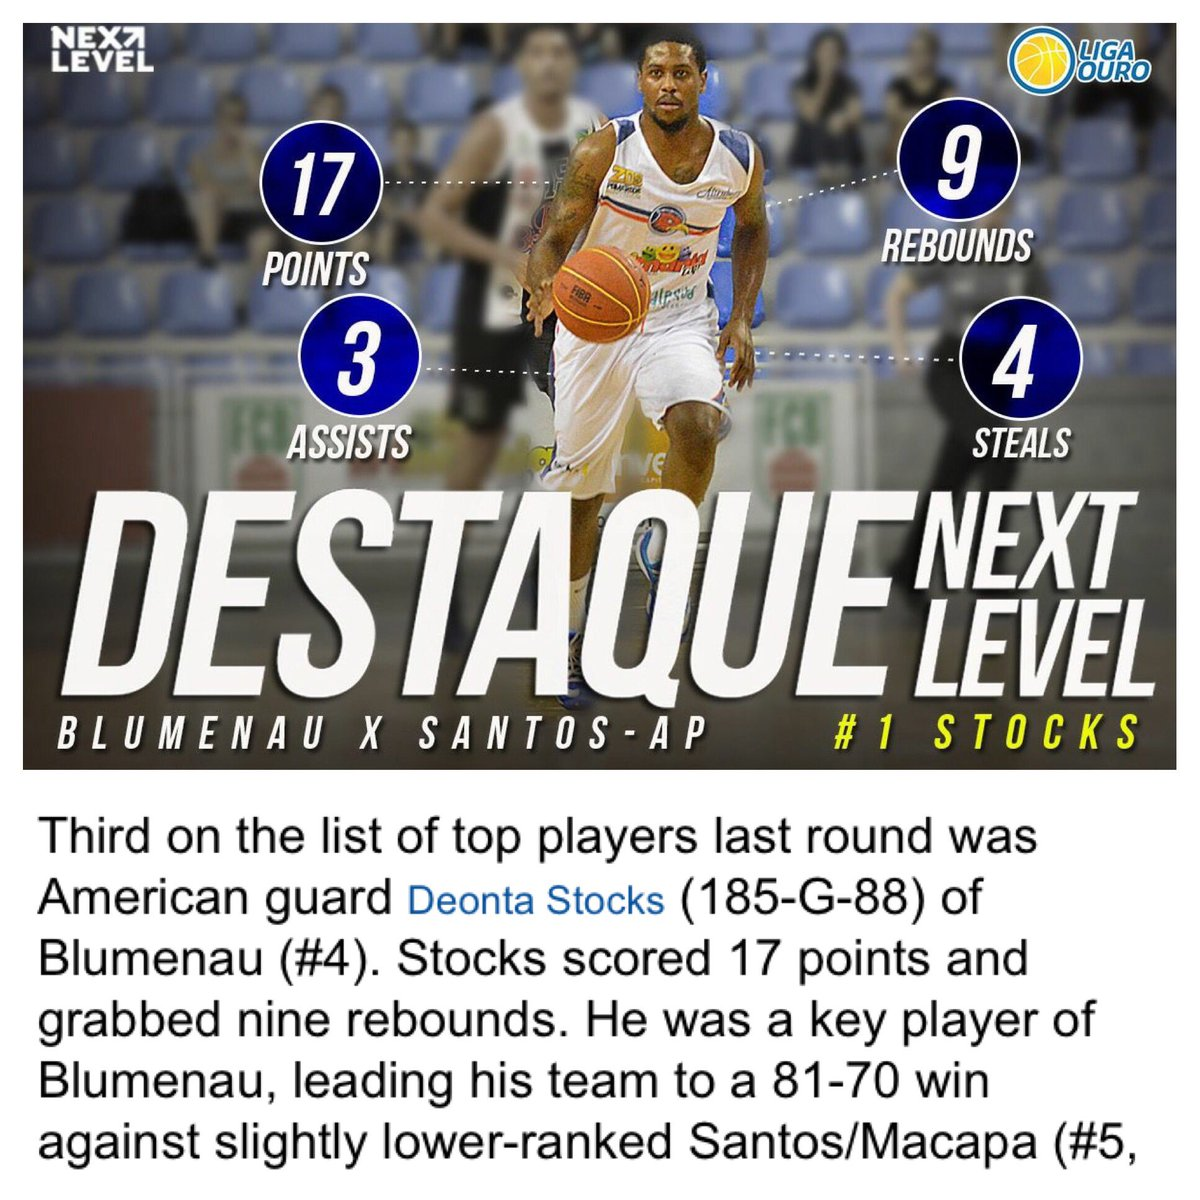 sims basketball sims basketball twitter congrats stocksrising being d as 3rd best performer for latinbasket com